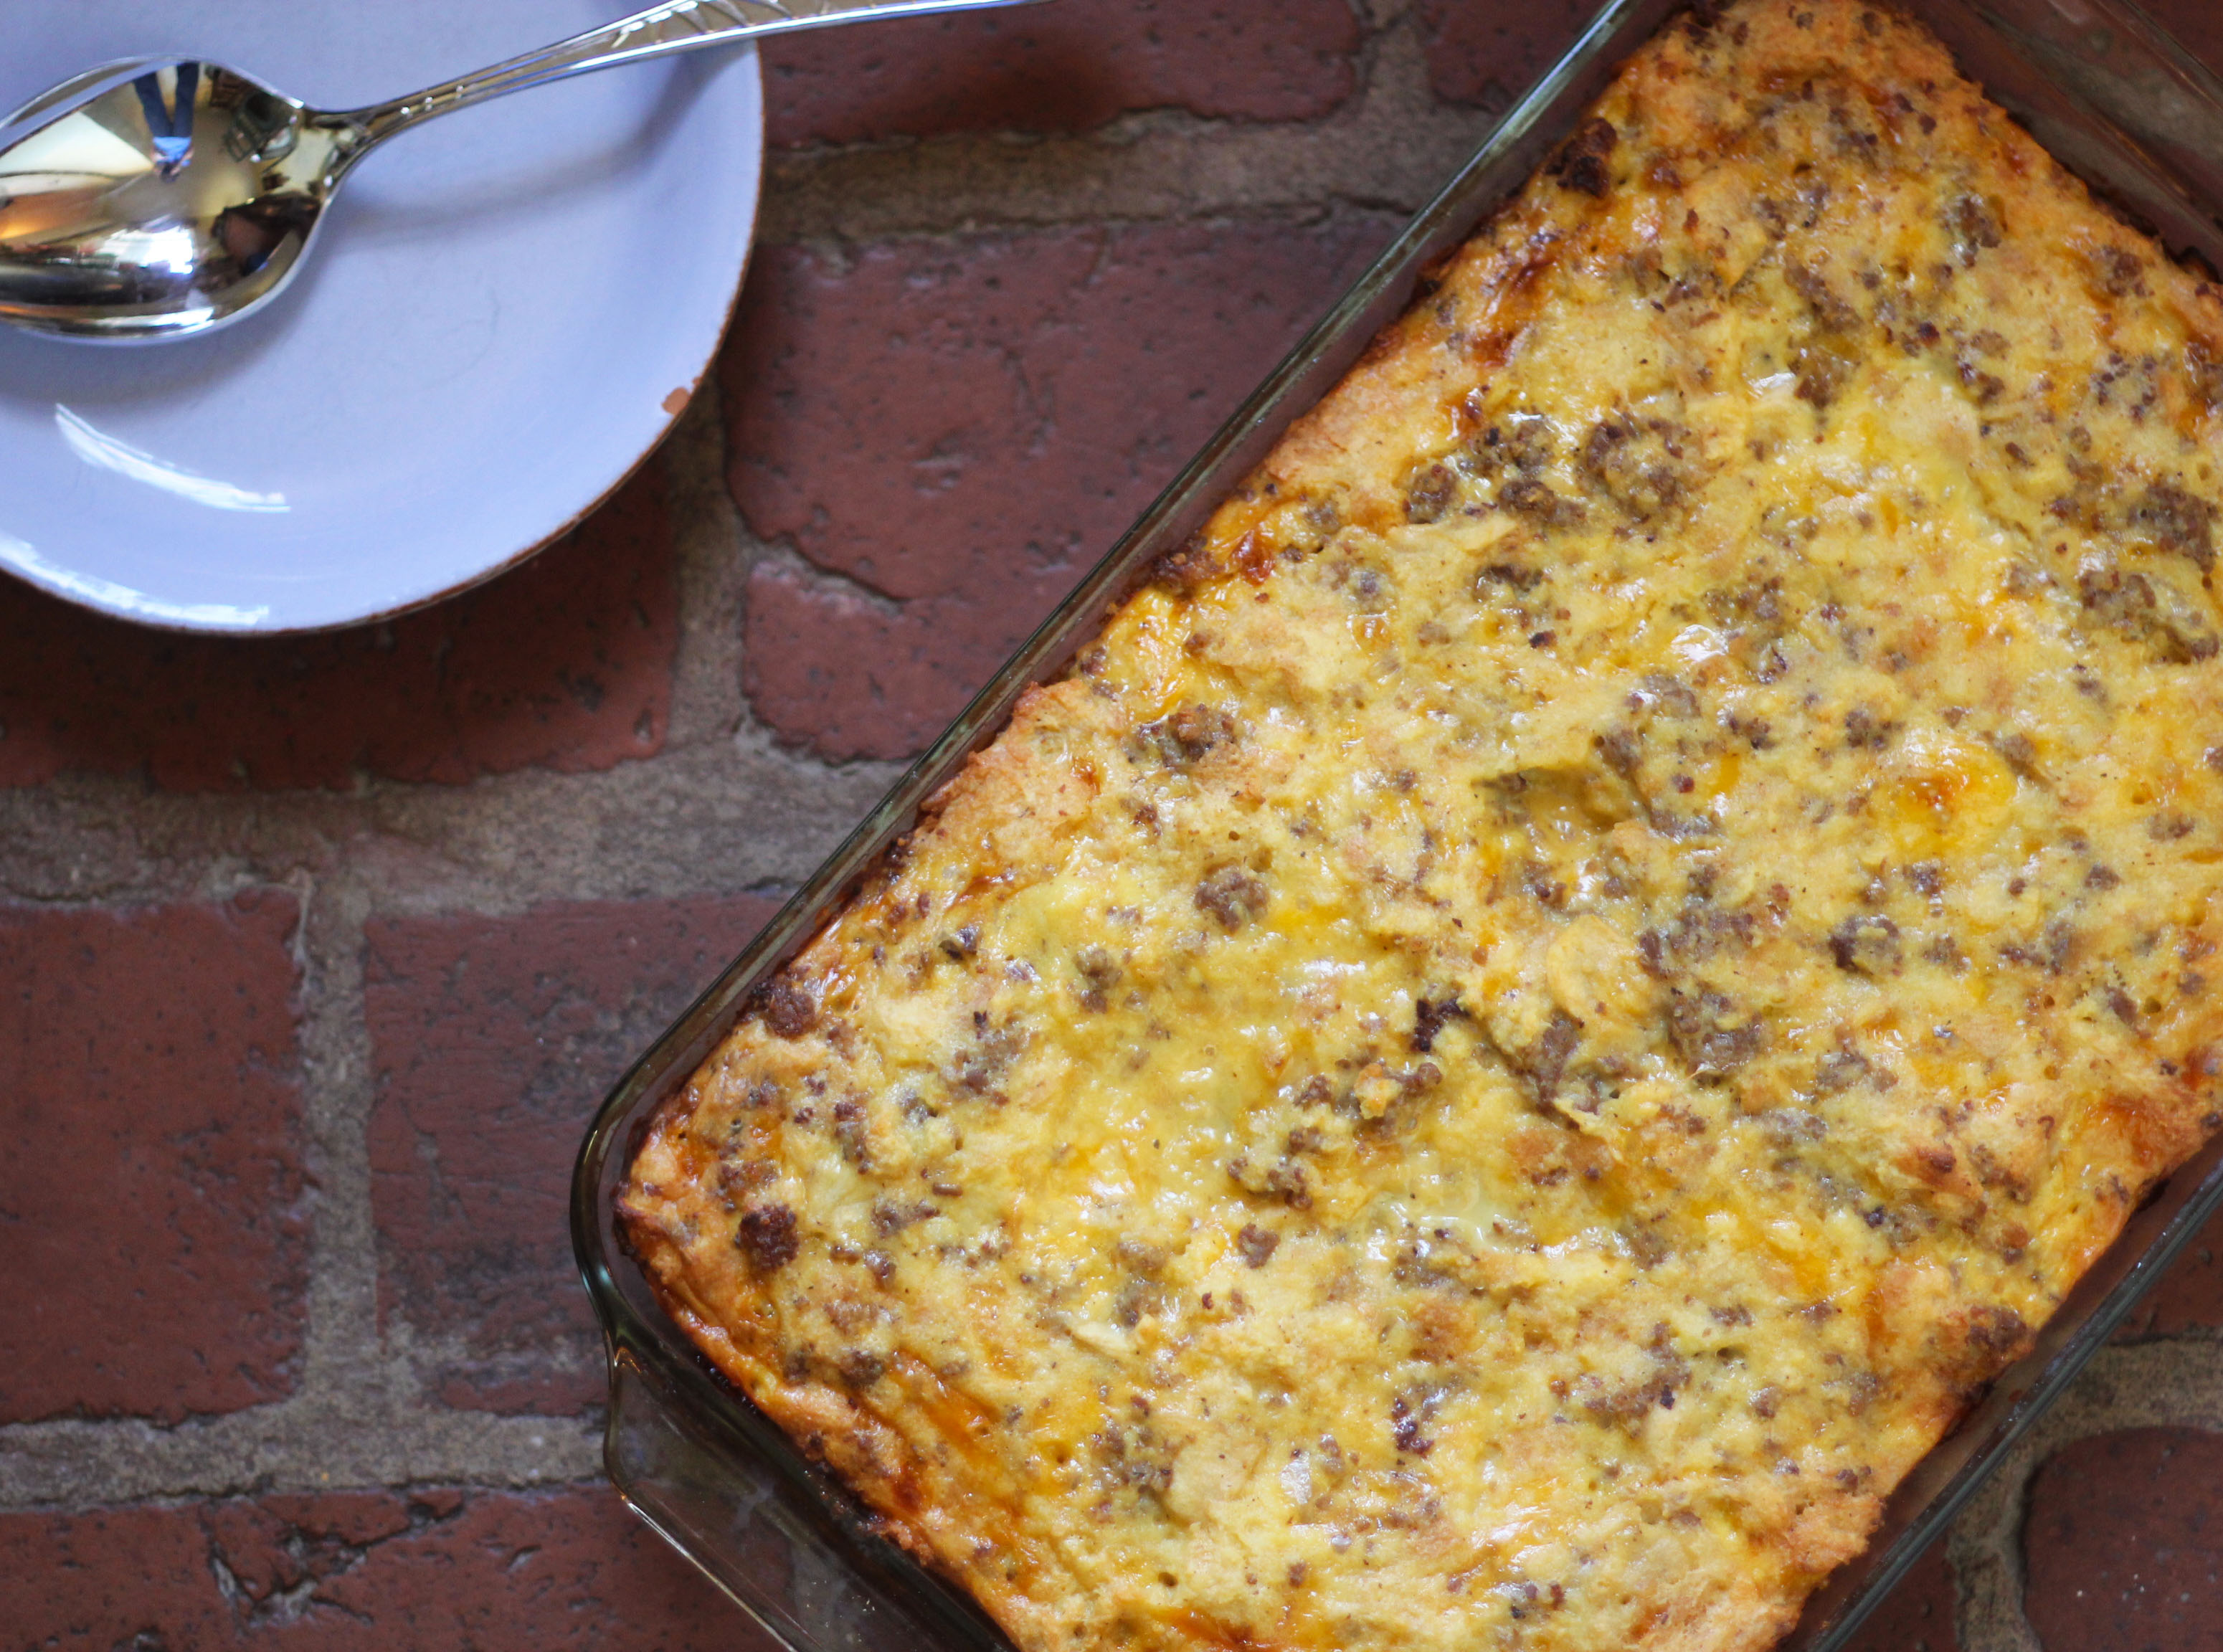 Biscuit, Sausage, Apple, and Cheese Breakfast Casserole | Plum Pie